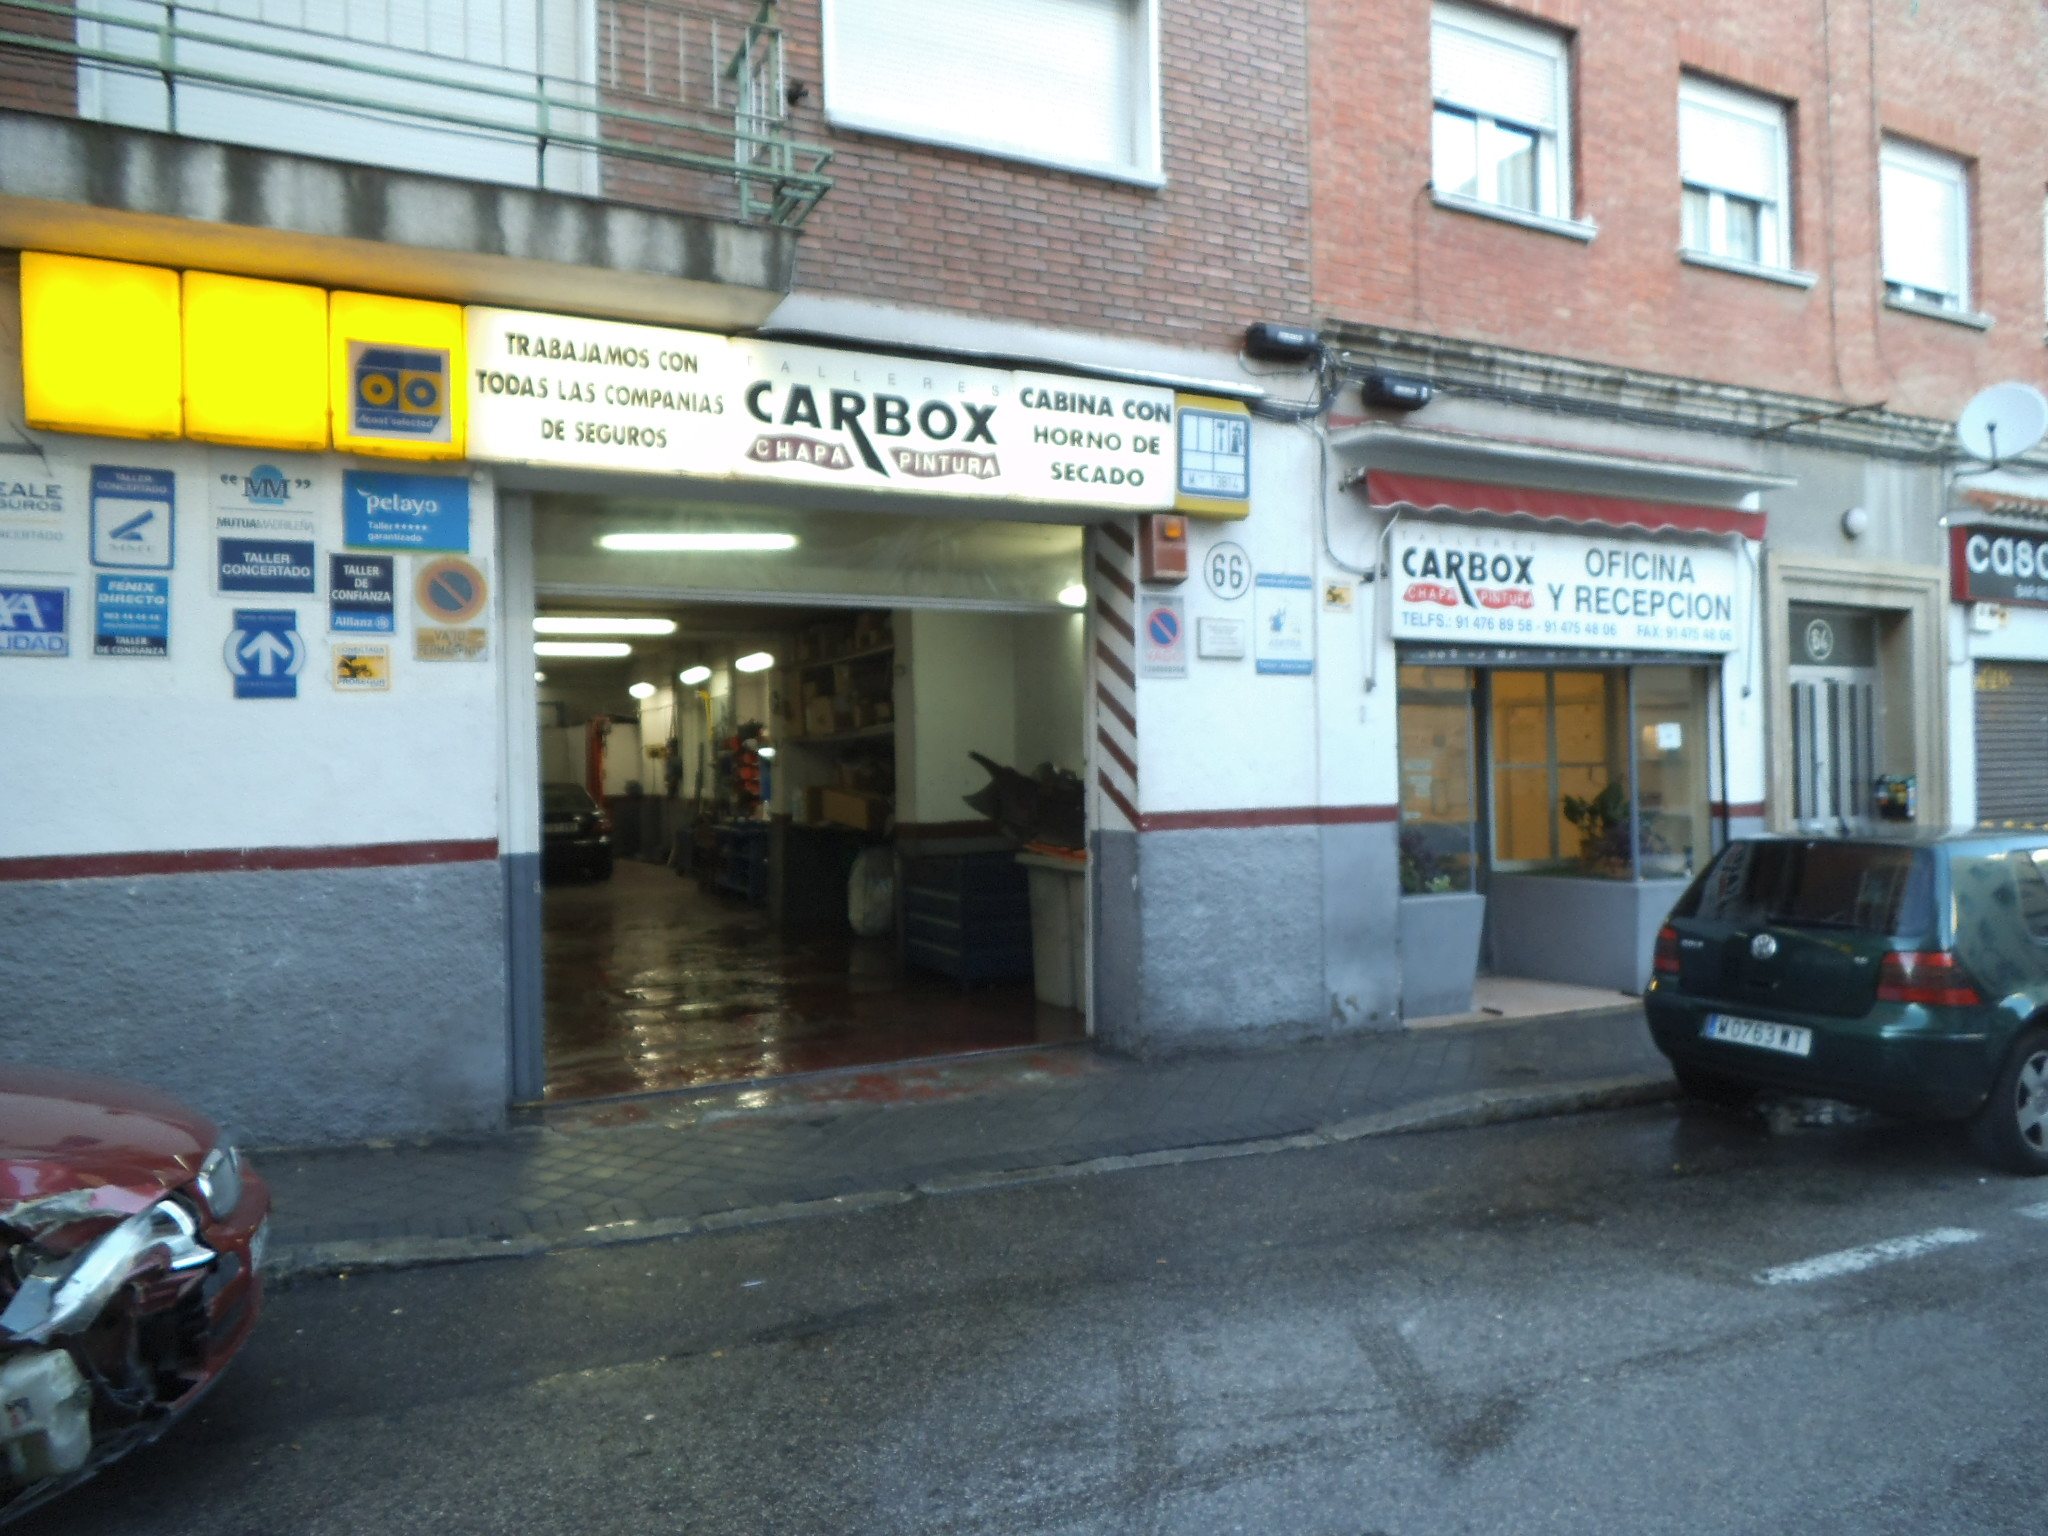 Talleres Carbox